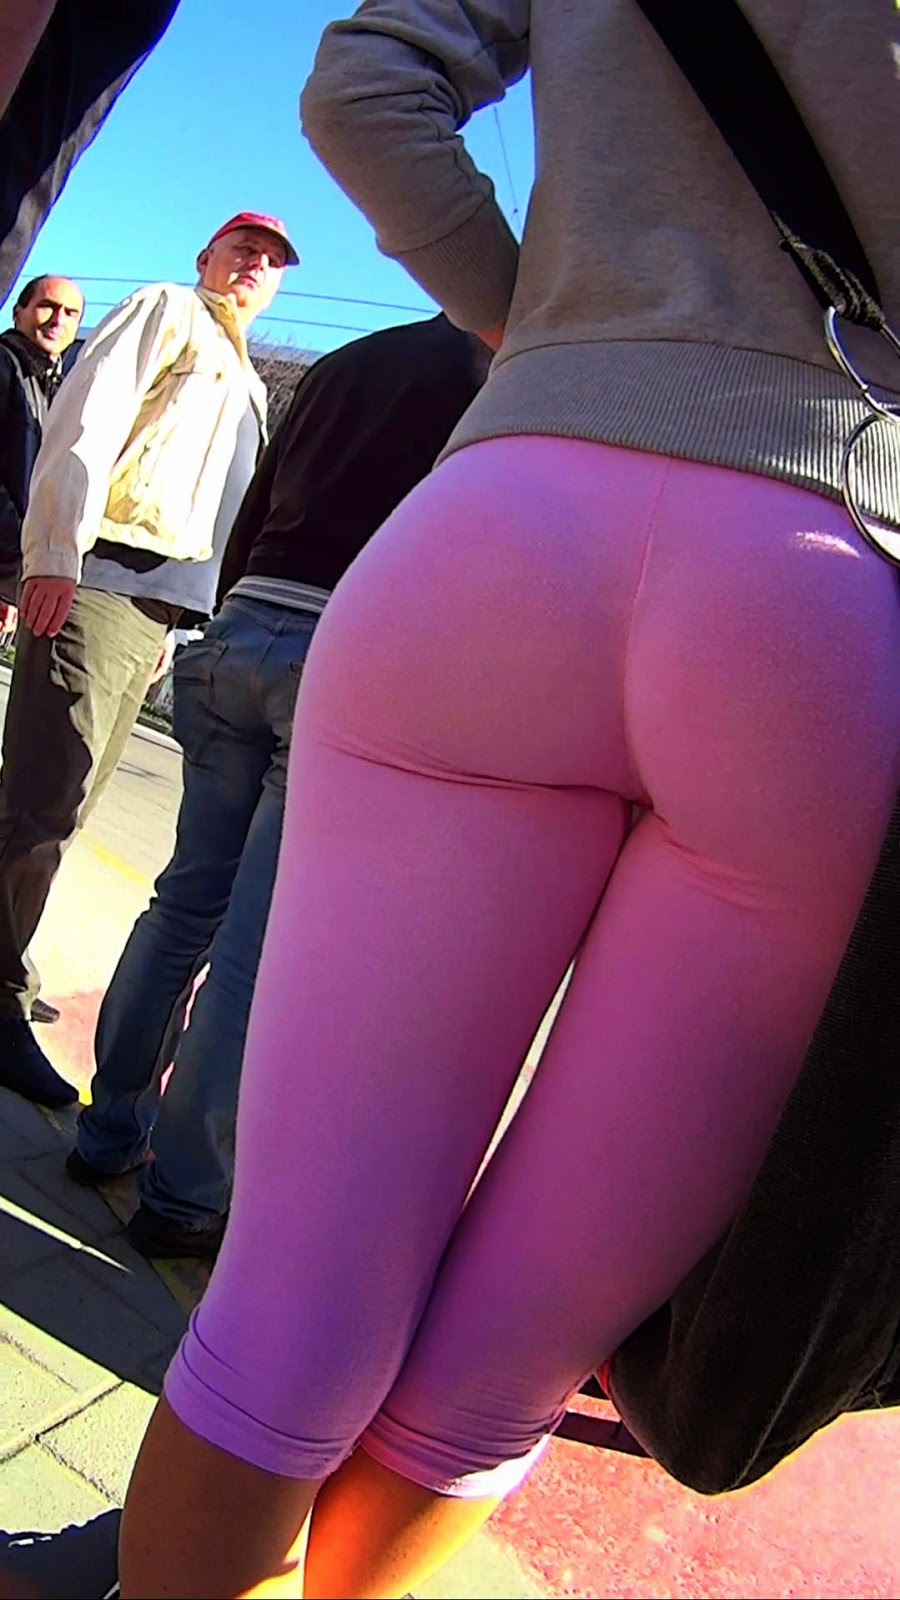 sexy women tight jeans